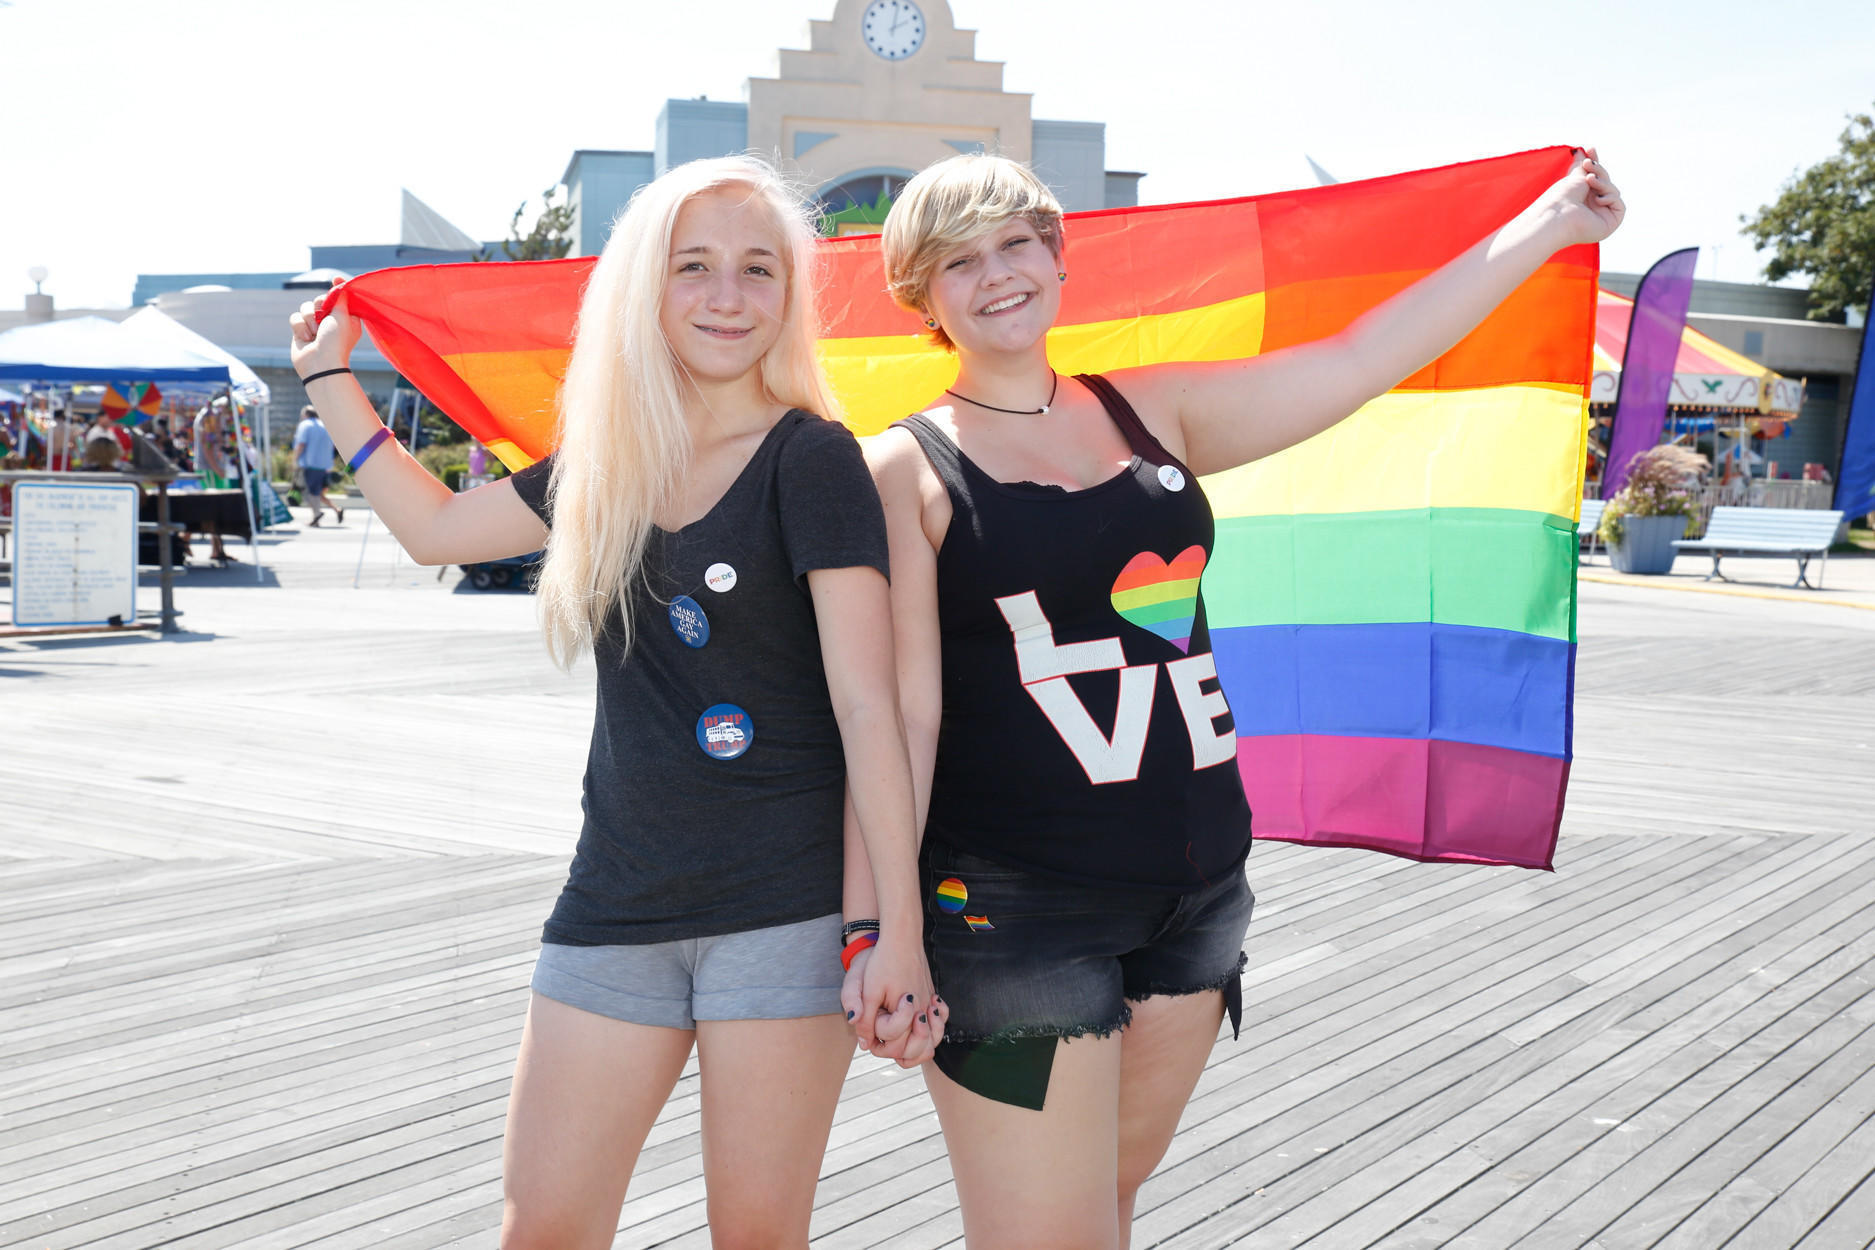 of LGBT visitors and hosts New London Gay Pride in